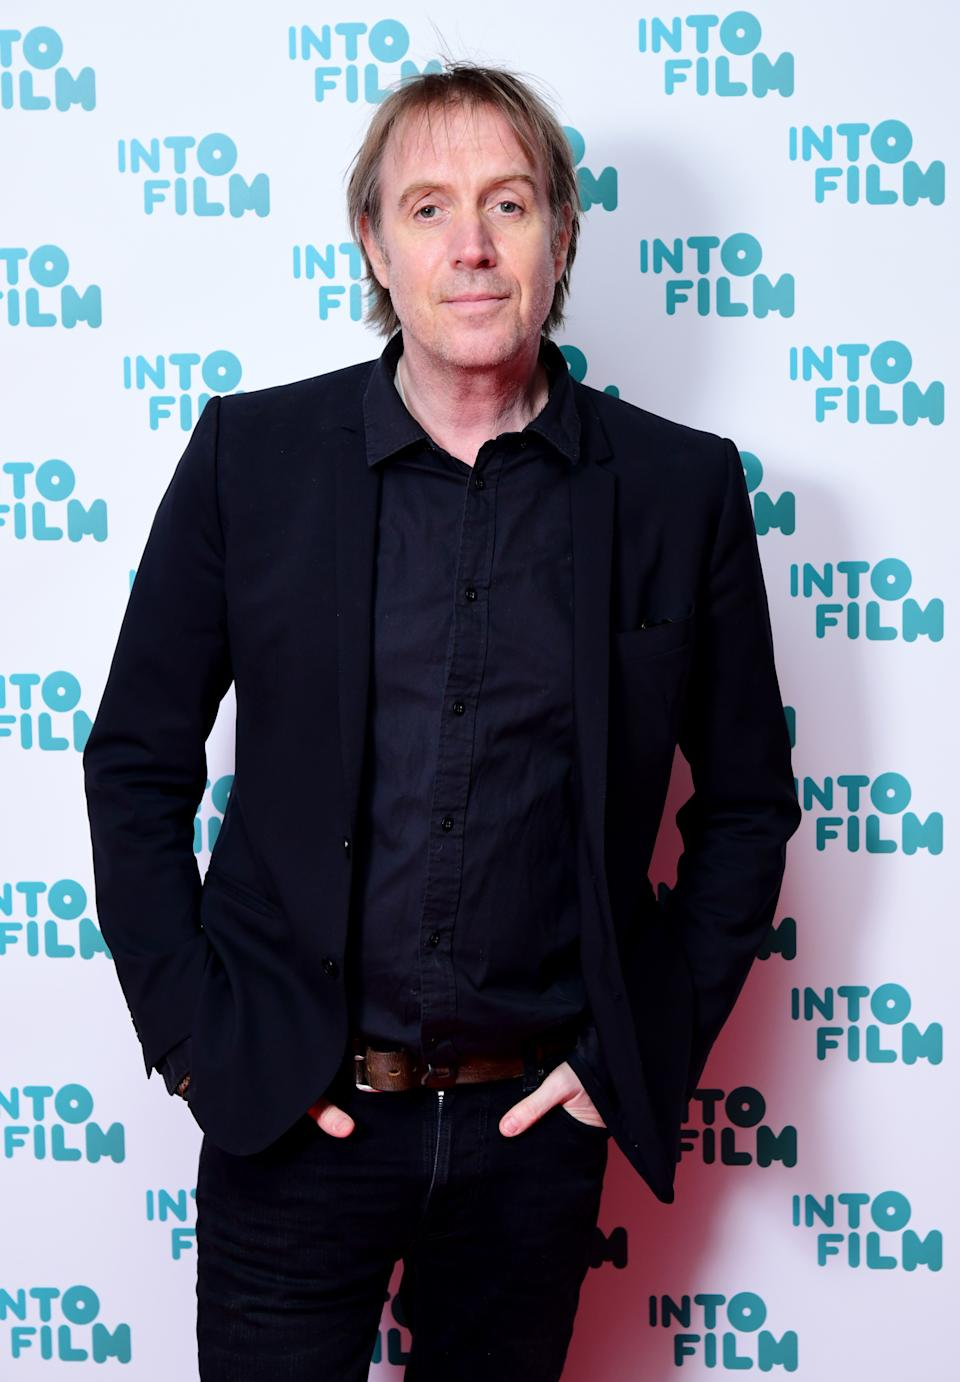 Rhys Ifans attending the fifth annual Into Film Awards, held at the Odeon Luxe in Leicester Square, London.